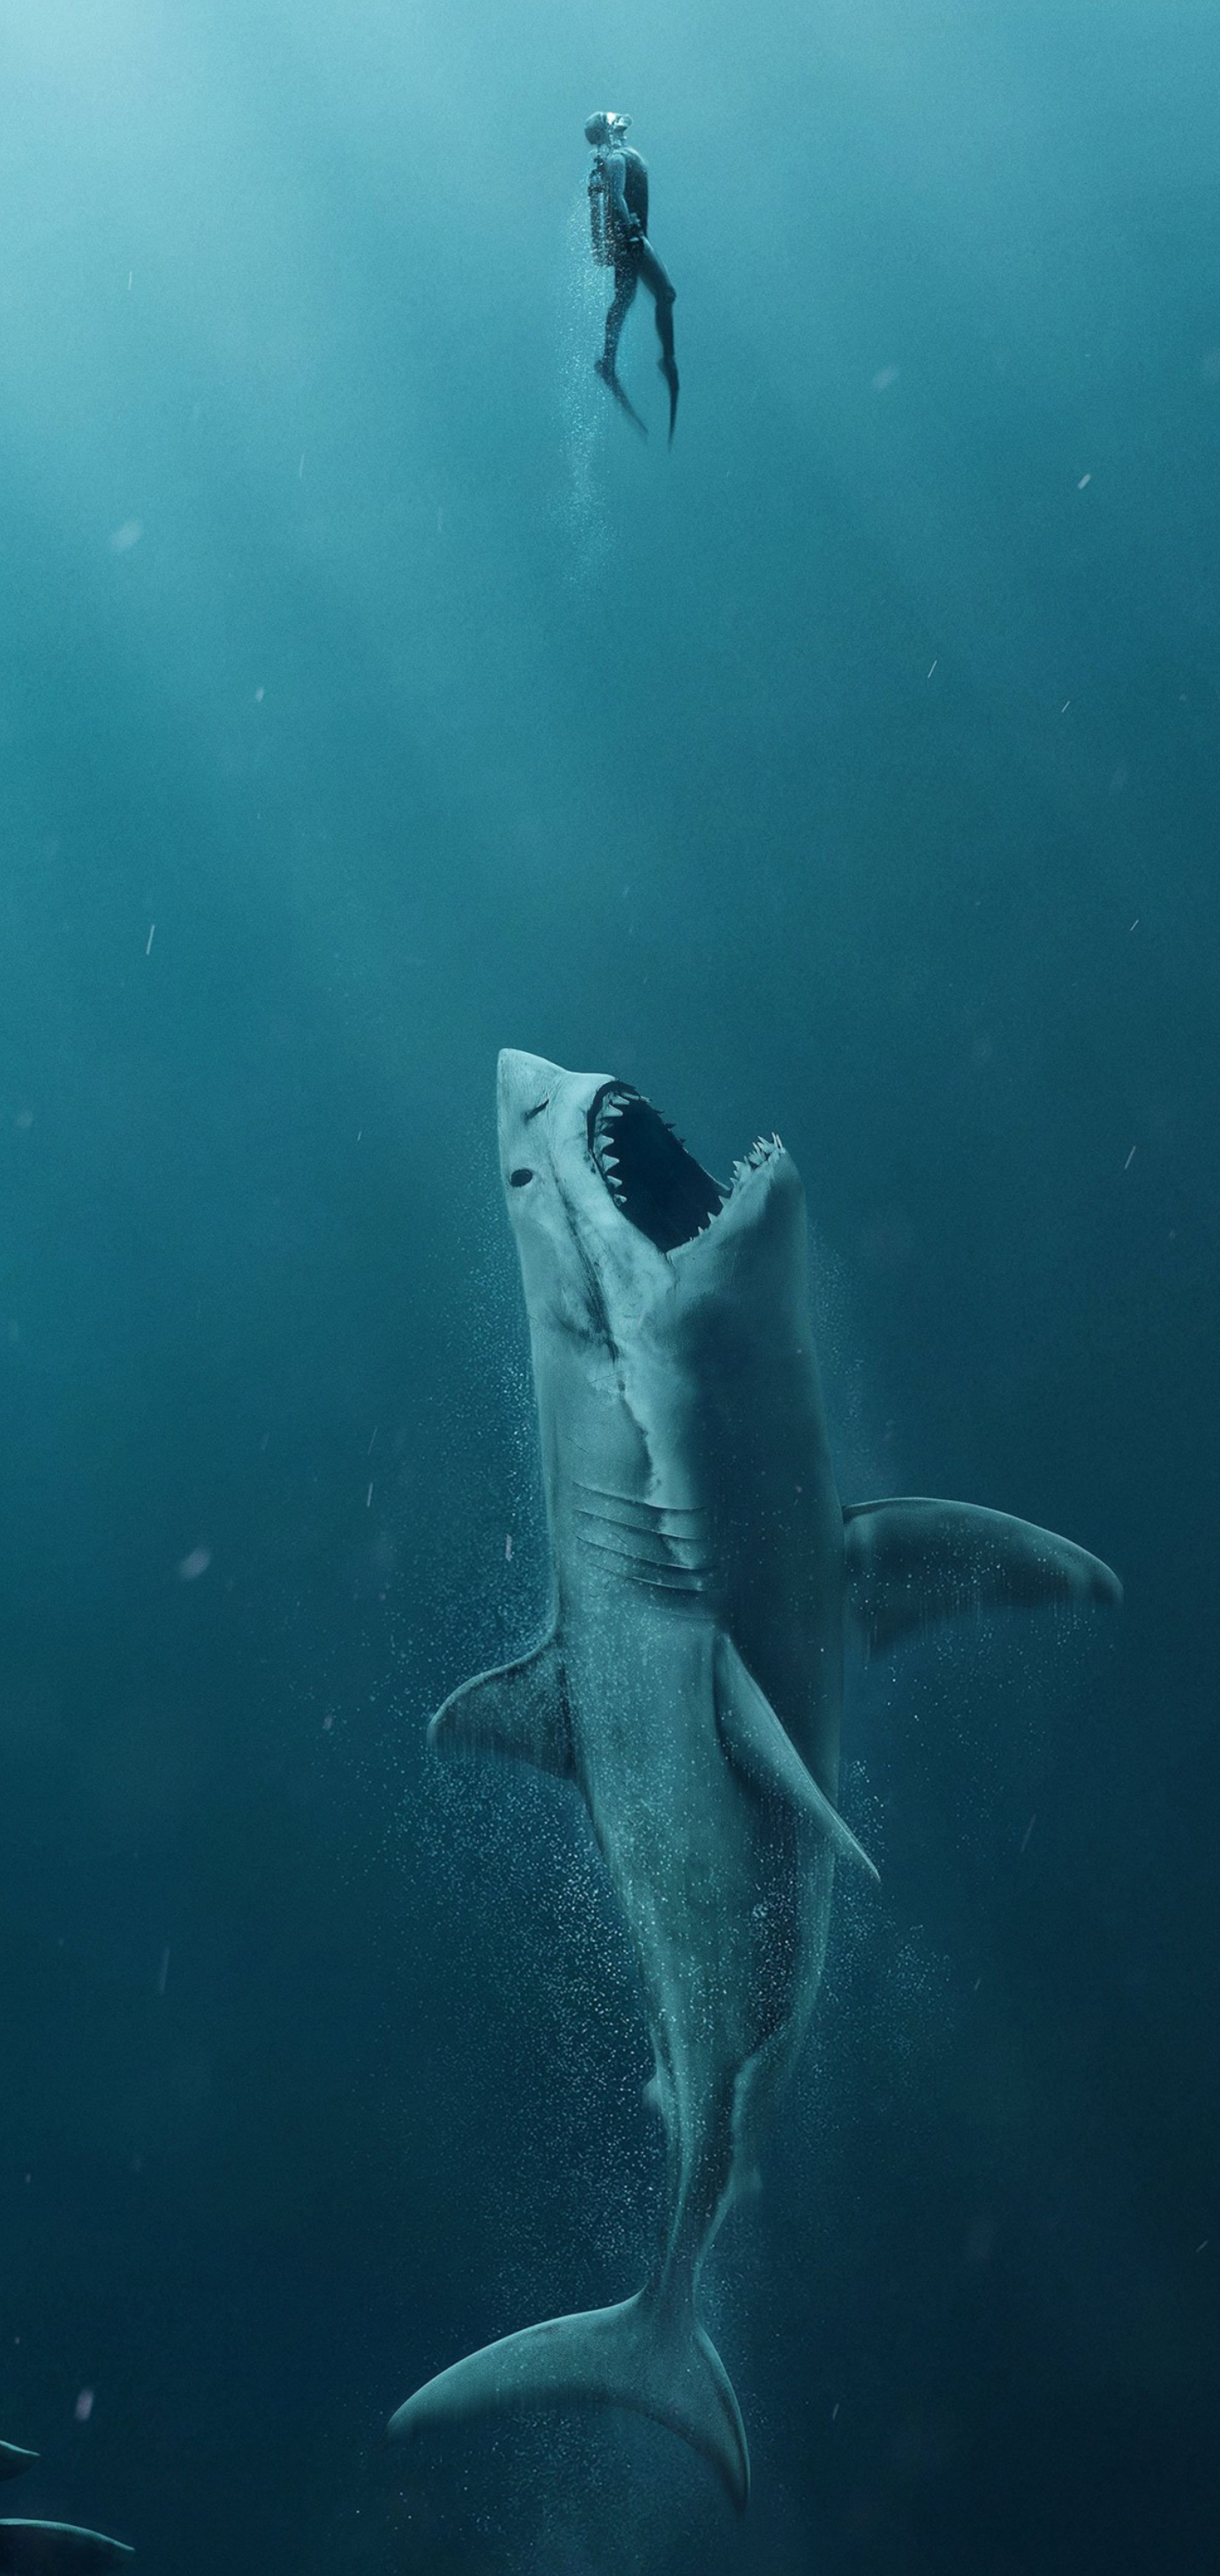 Shark Samsung Galaxy A51 and A71 HD Wallpapers